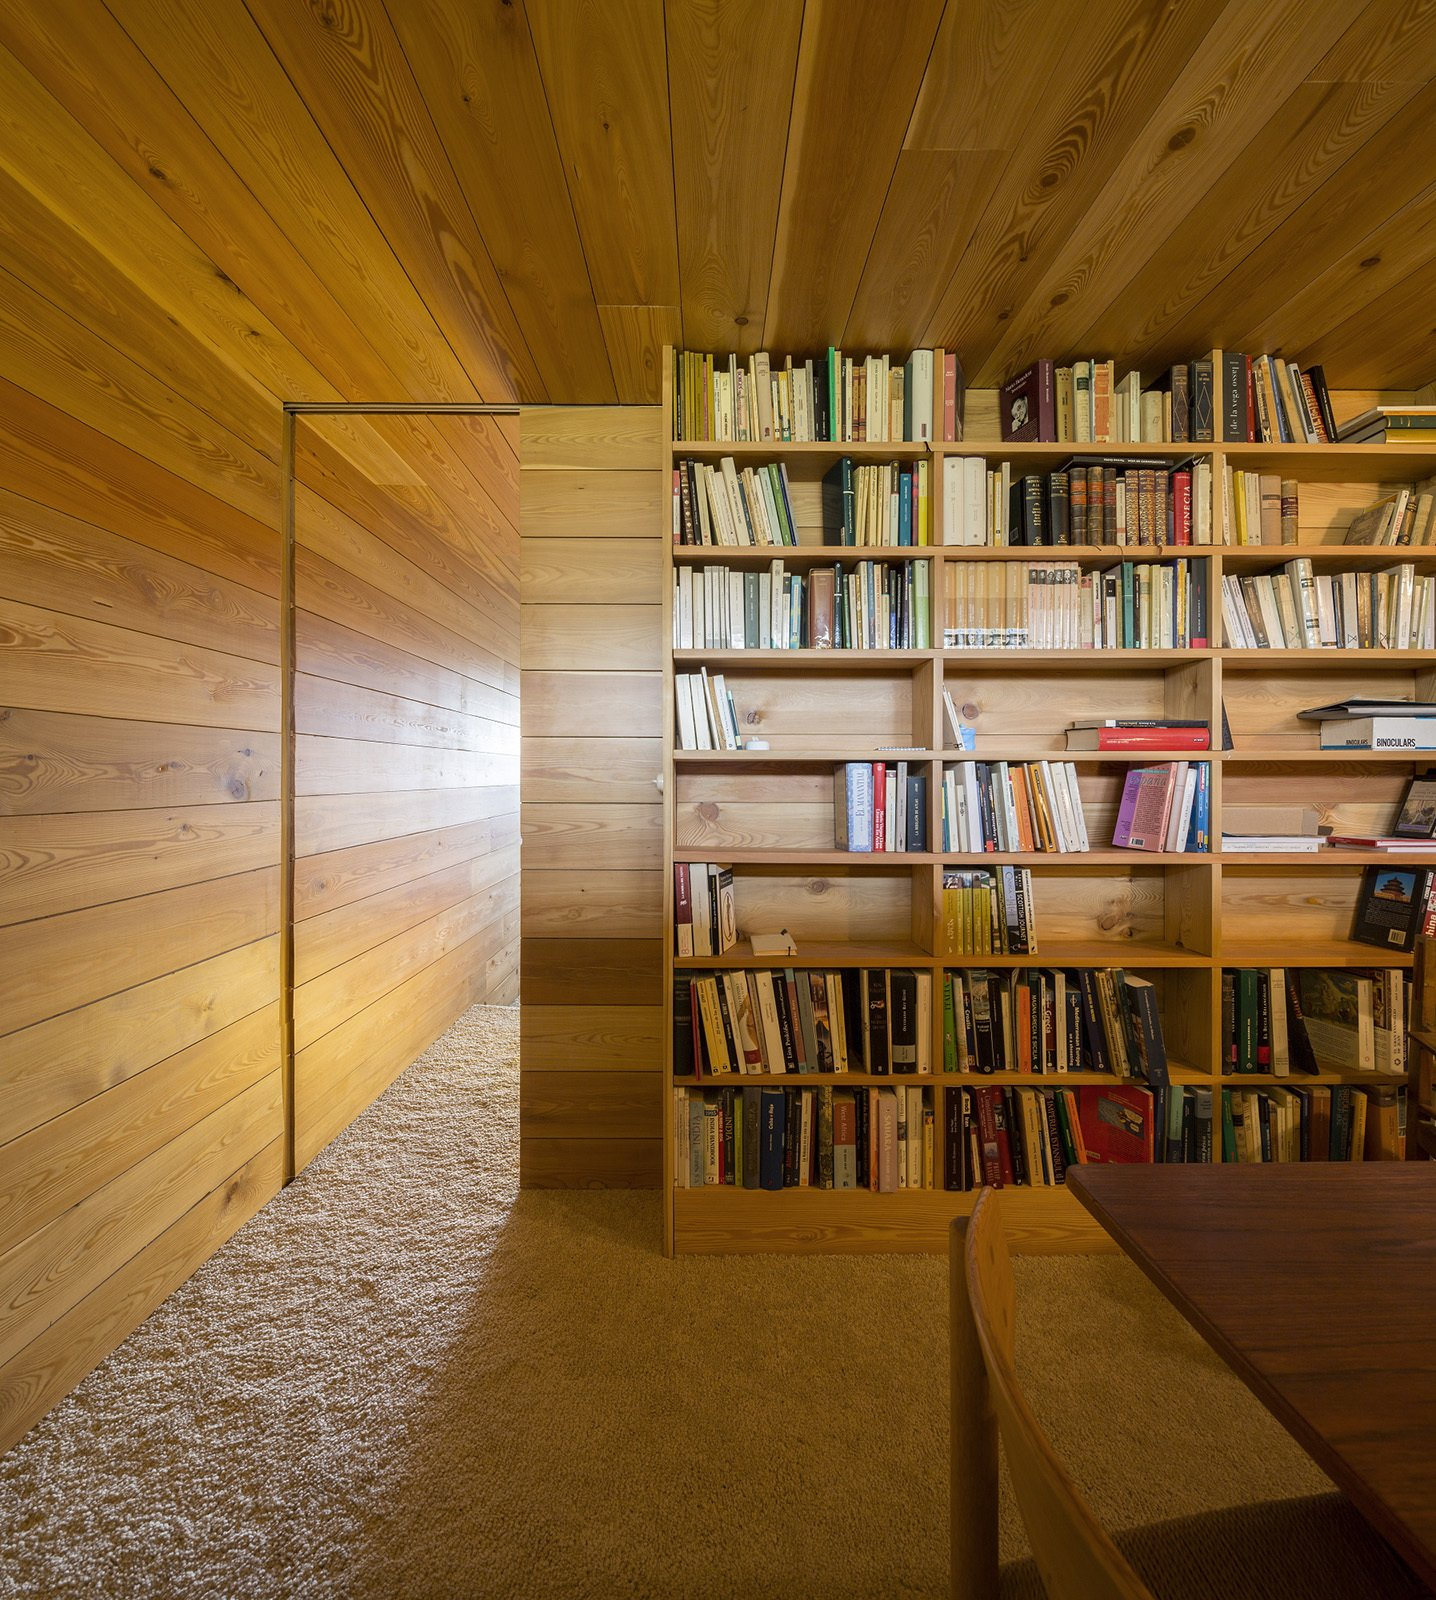 #storage #modern #minimal #structure #function #library #wood #panels #bookshelves #books #dynamic #detail #slidingdoor #vacationhome #Spain    Read by DAVE MORIN from bookcase